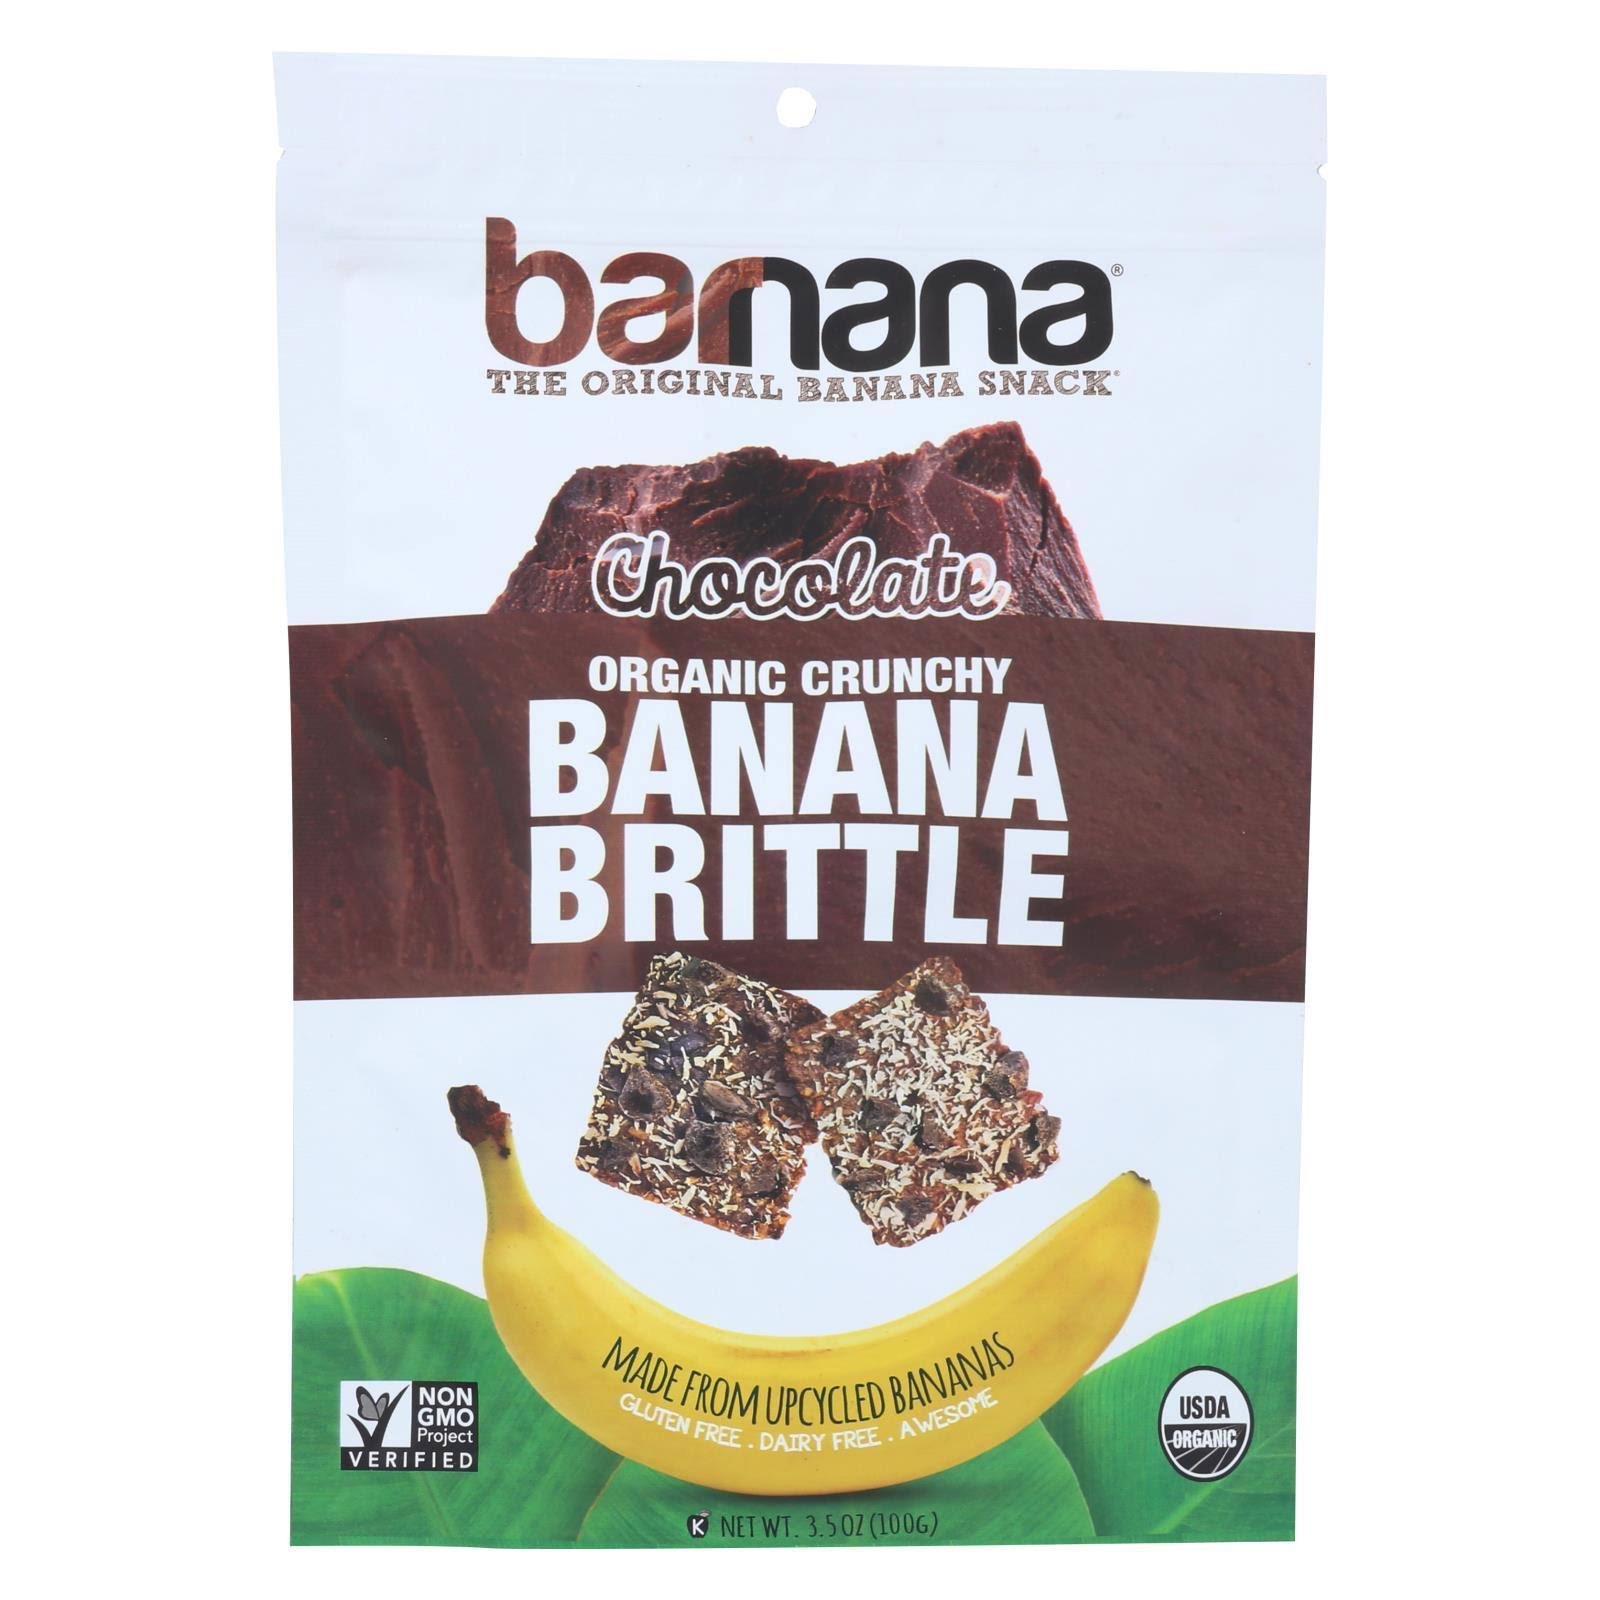 Barnana Banana Brittle, Organic Crunchy, Dark Chocolate - 3.5 oz